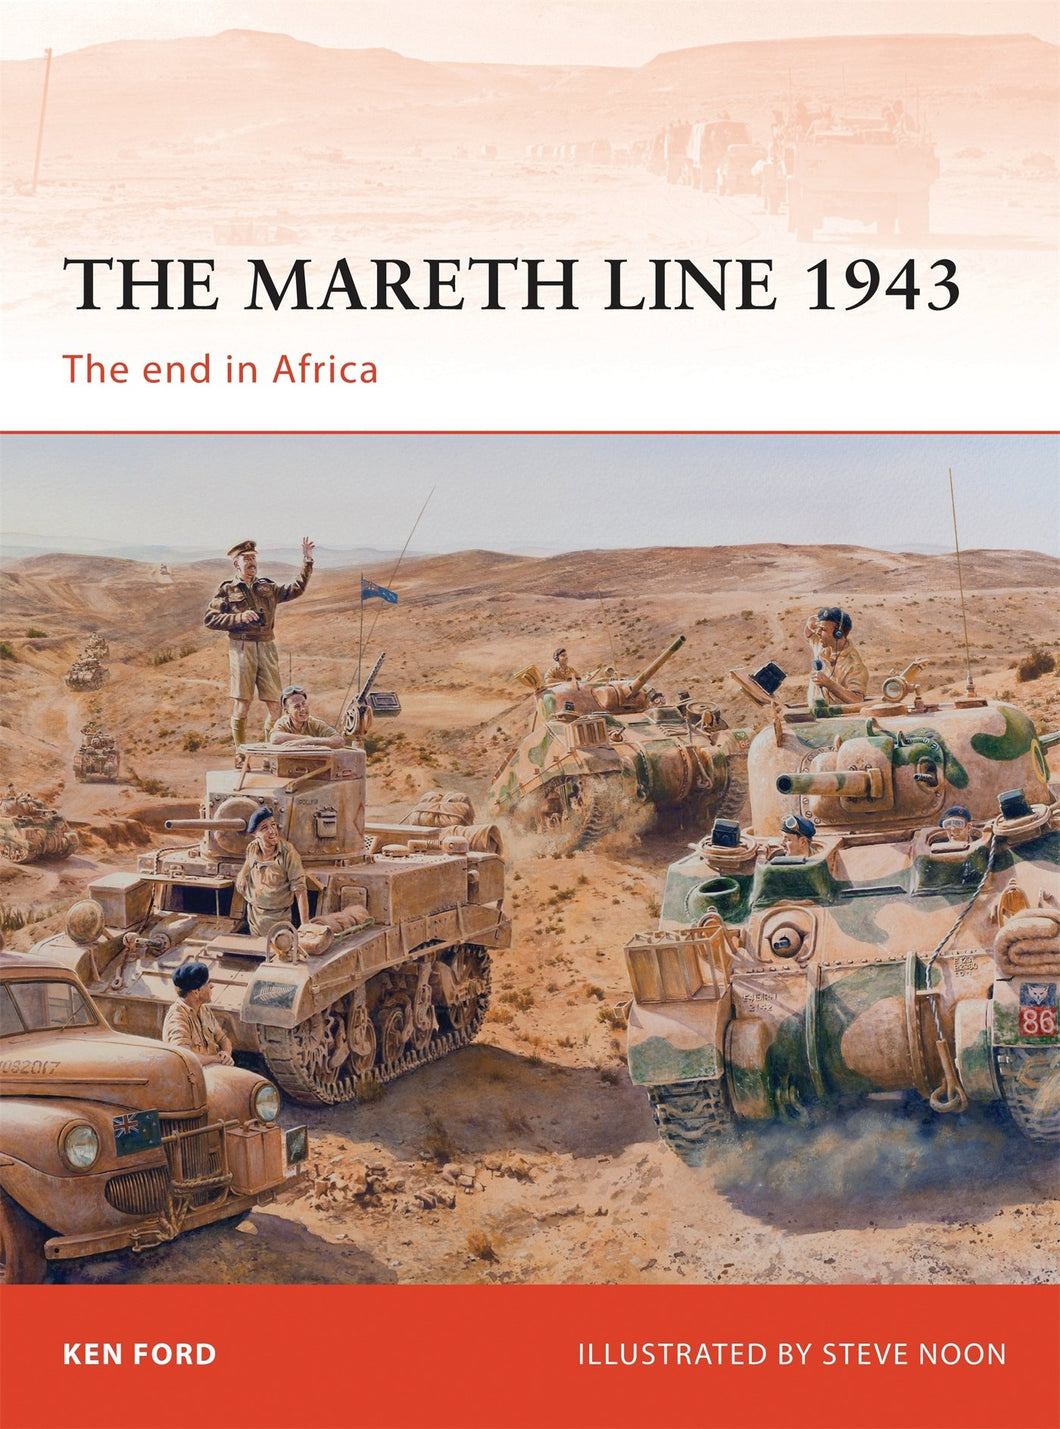 The Mareth Line 1943 - The Tank Museum